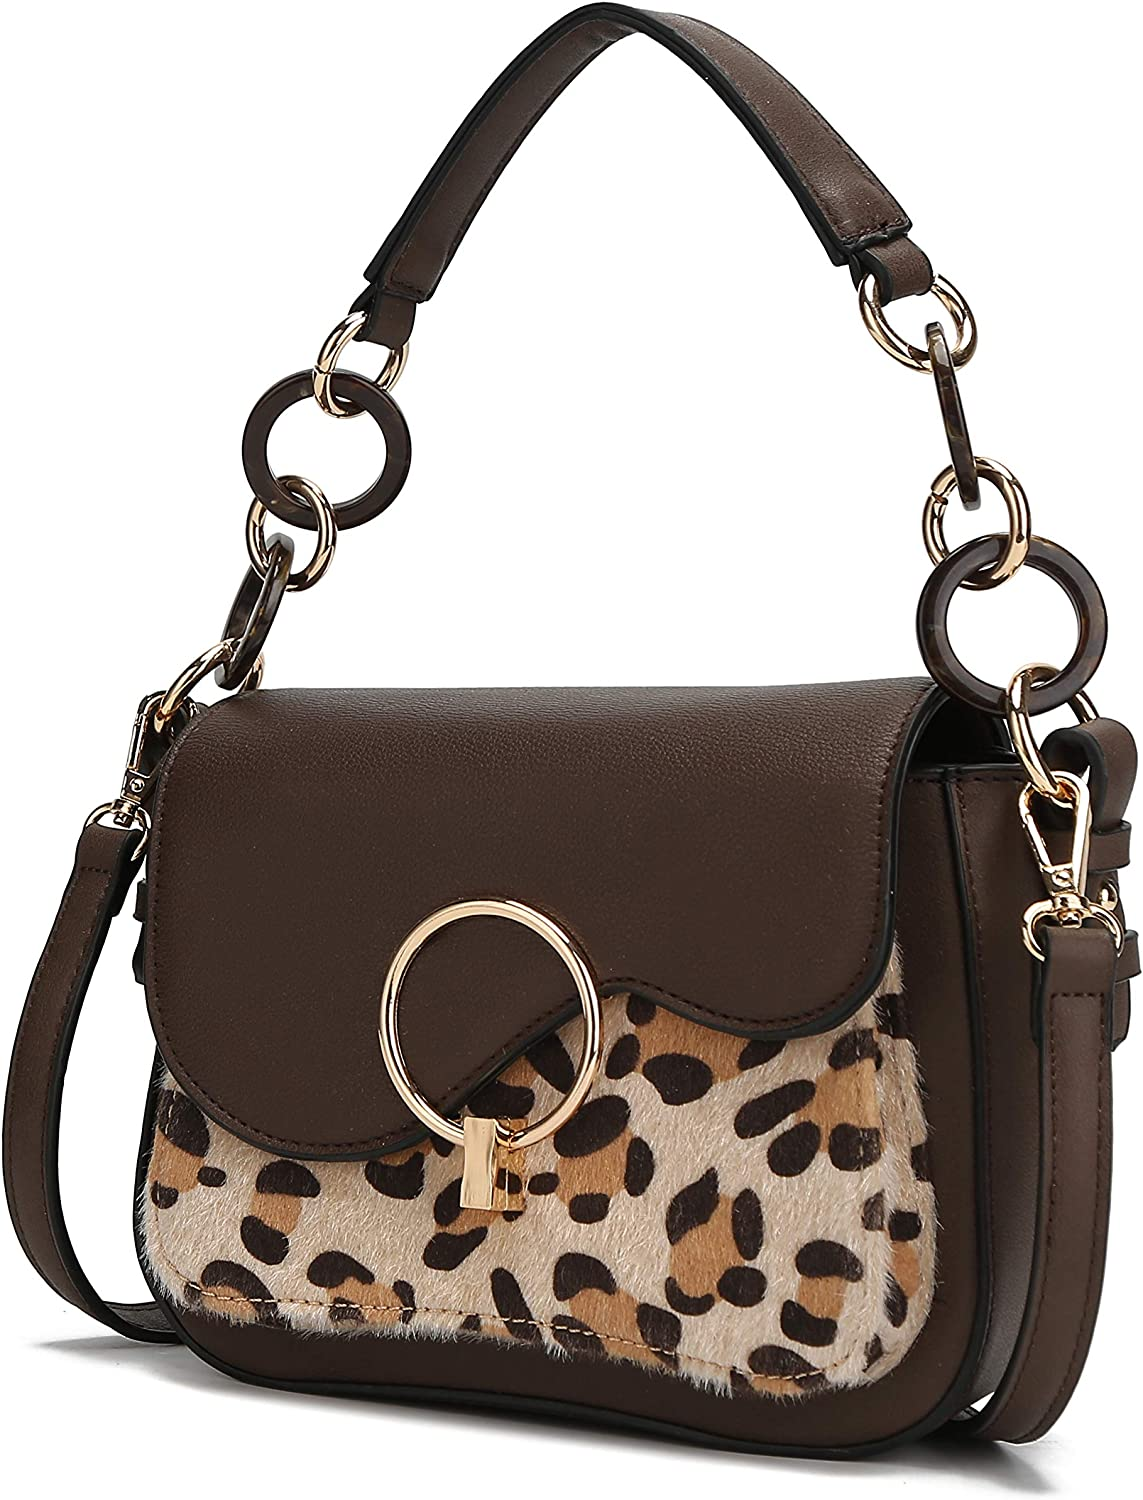 OFFicial site MKF Crossbody Cheap Bags for Women – Leather Pocketbook PU Handba